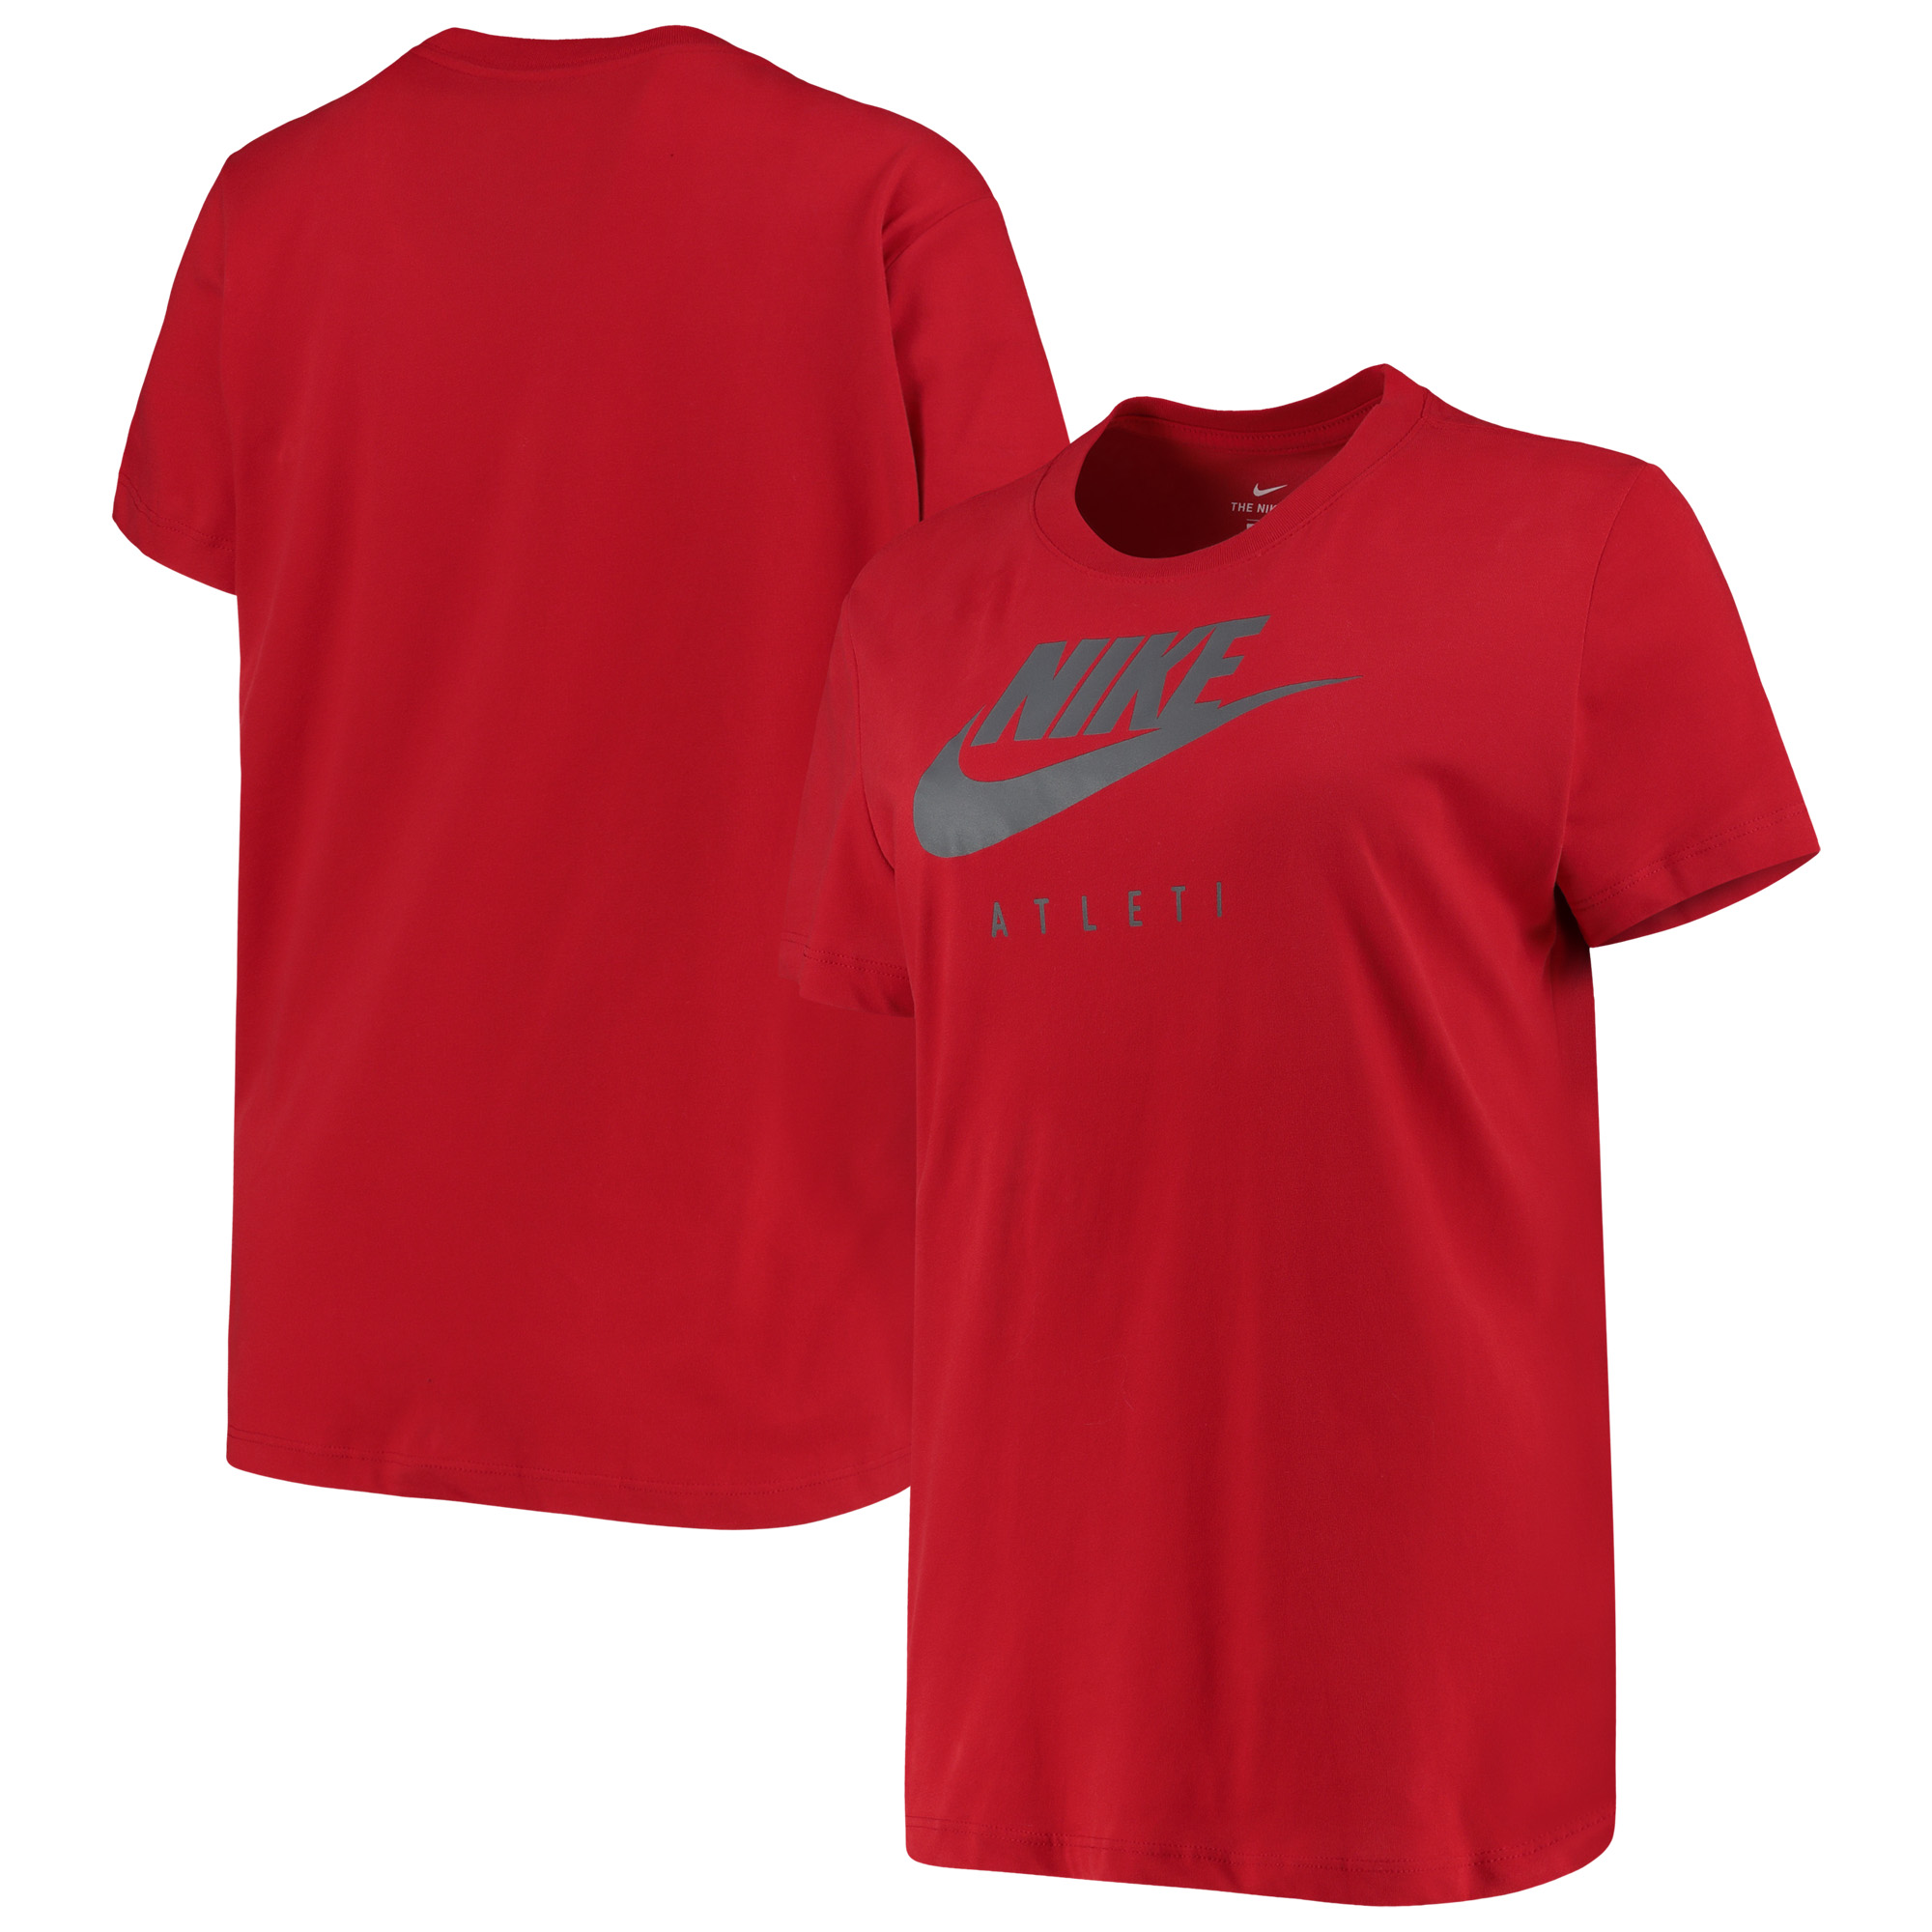 Camiseta Dry Training Ground del Atlético de Madrid para mujer